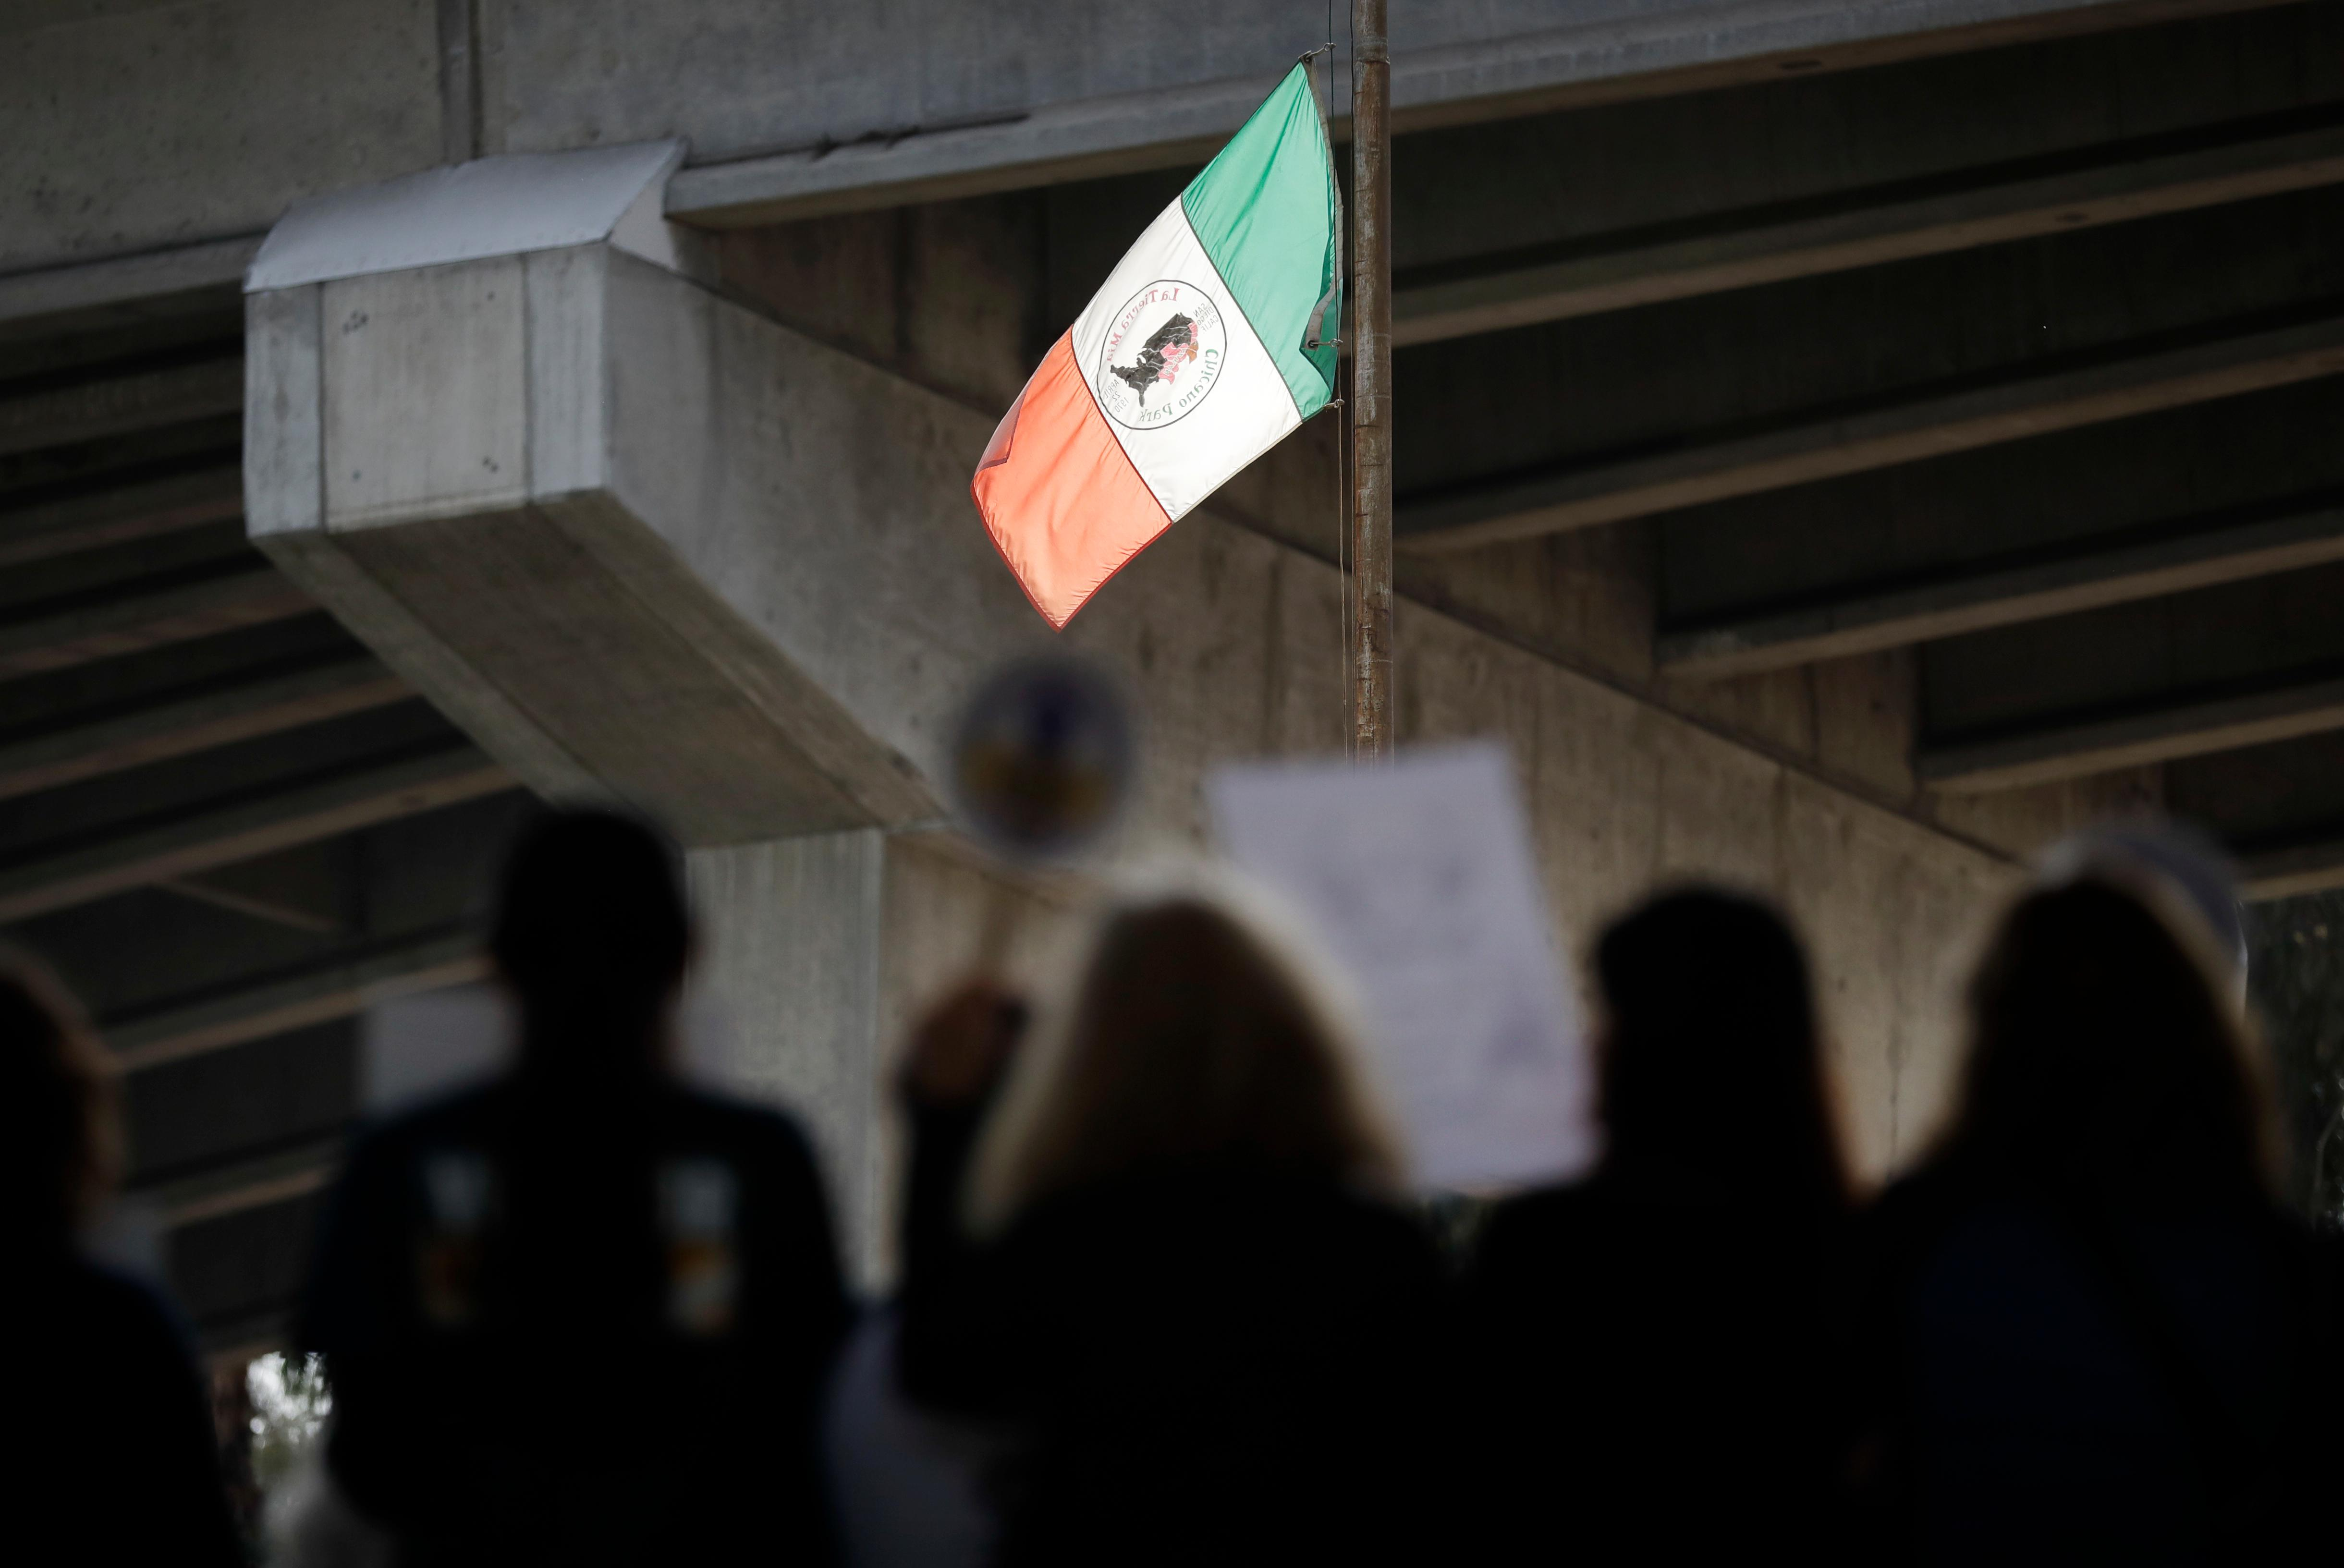 People attend a rally against a scheduled upcoming visit to the area by President Donald Trump as a flag fashioned after the flag of Mexico flies over Chicano Park Monday, March 12, 2018, in San Diego. Trump is scheduled to visit San Diego Tuesday, setting foot in California for his first time as president. (AP Photo/Gregory Bull)